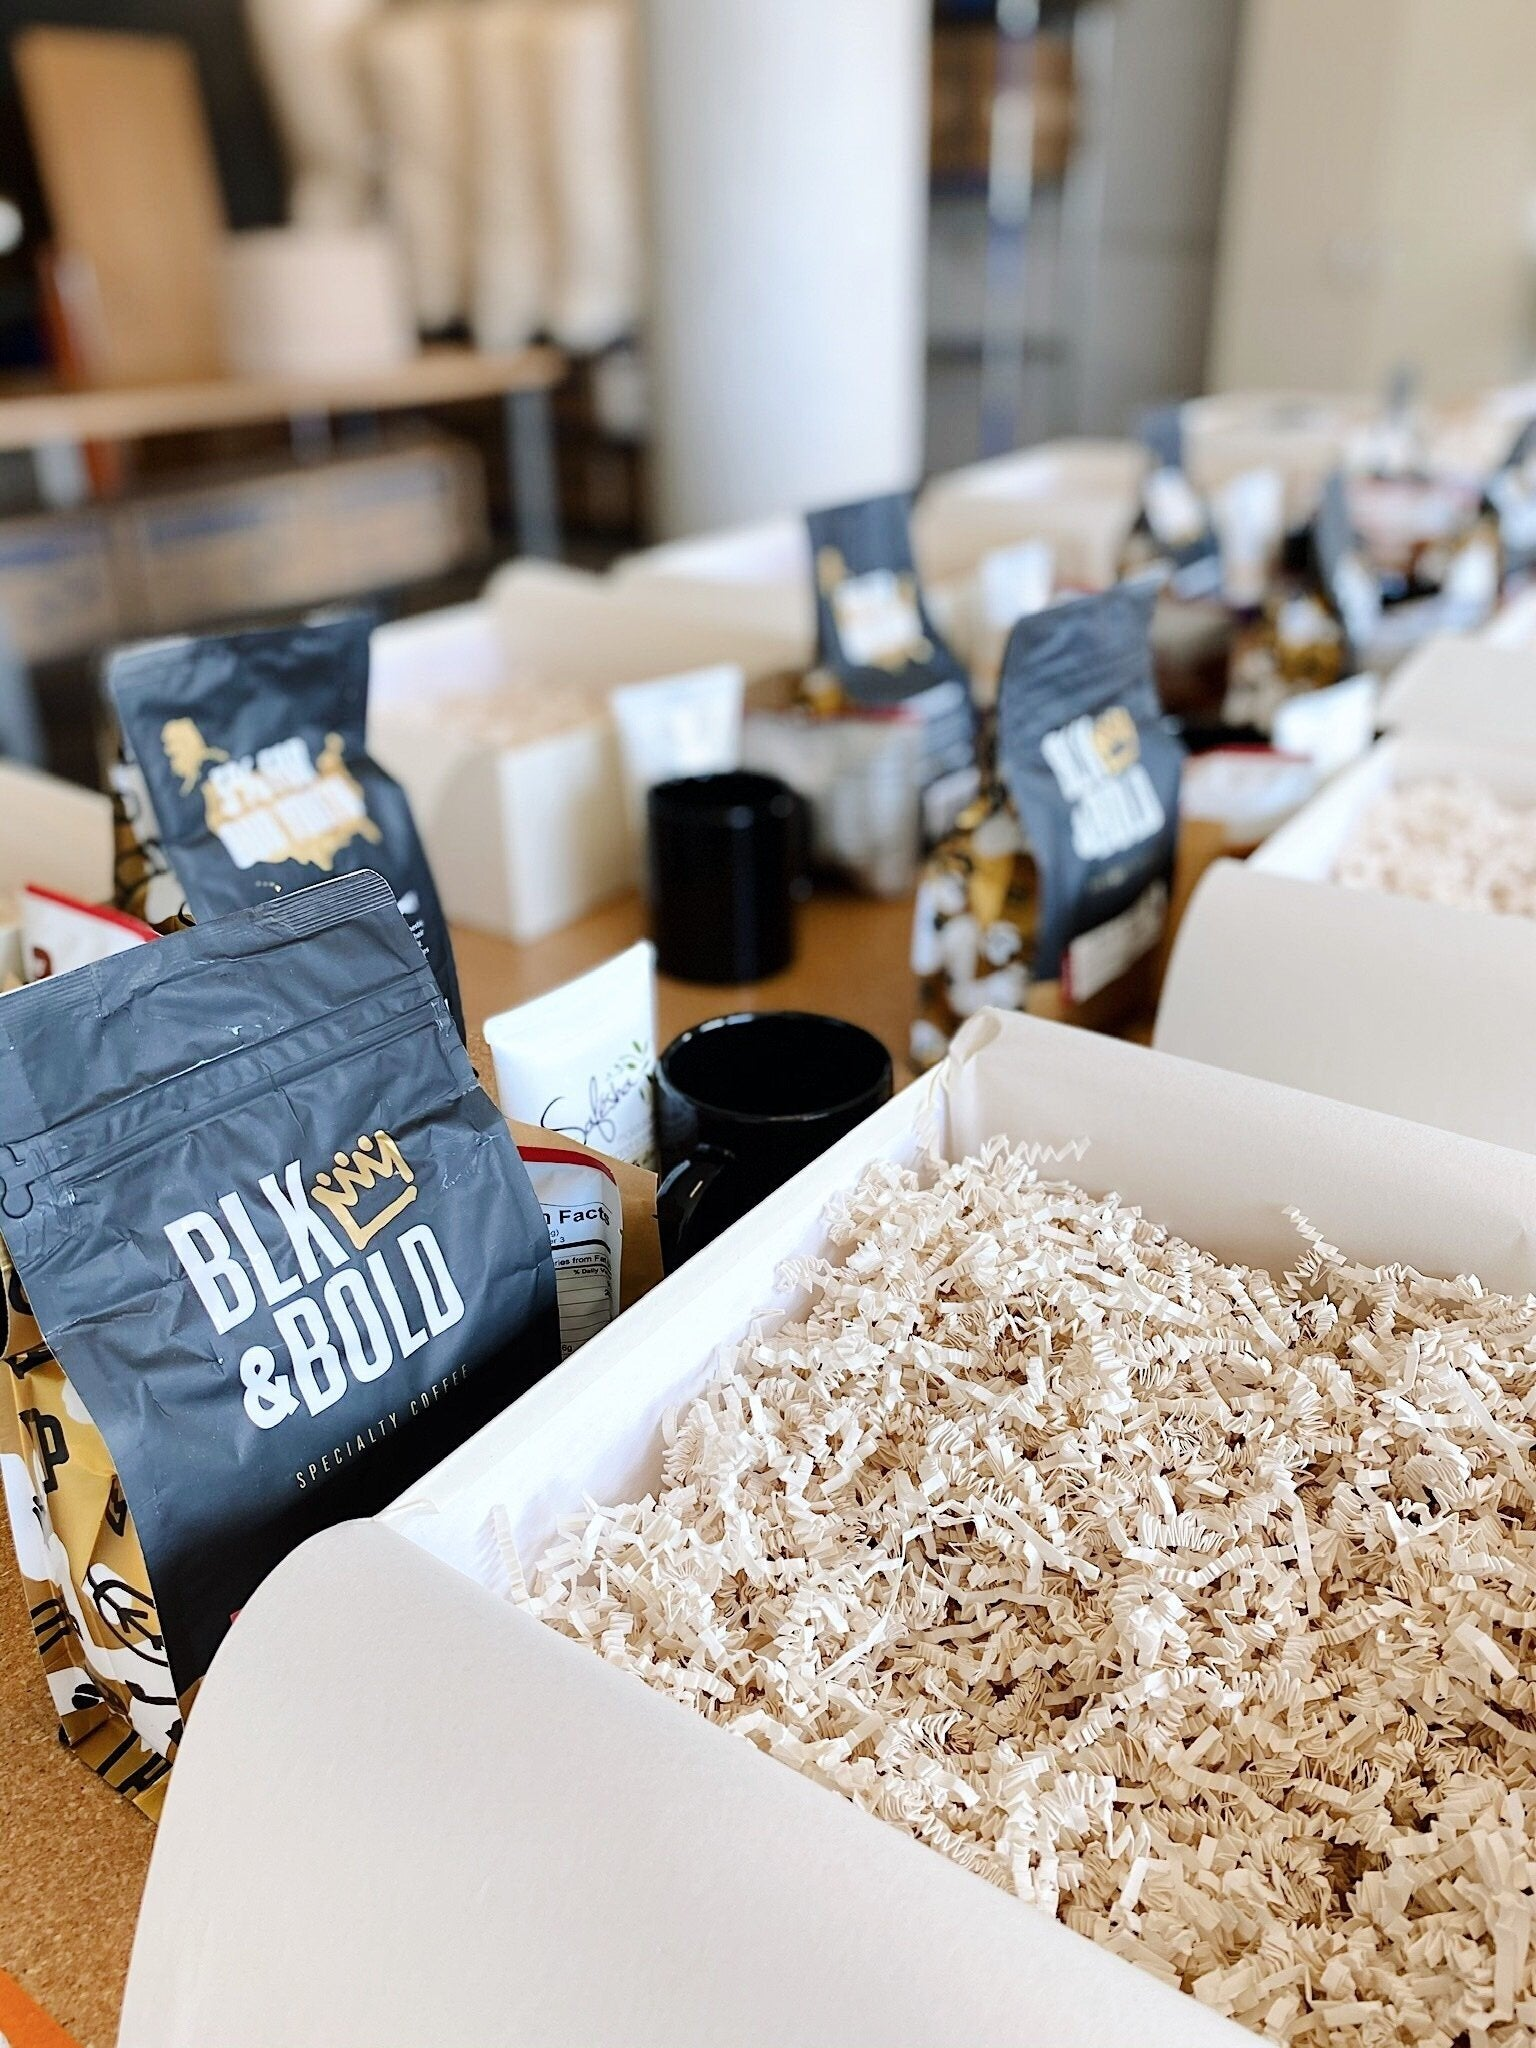 BLK & Bold coffee beans being packed into a Minny & Paul corporate gift order